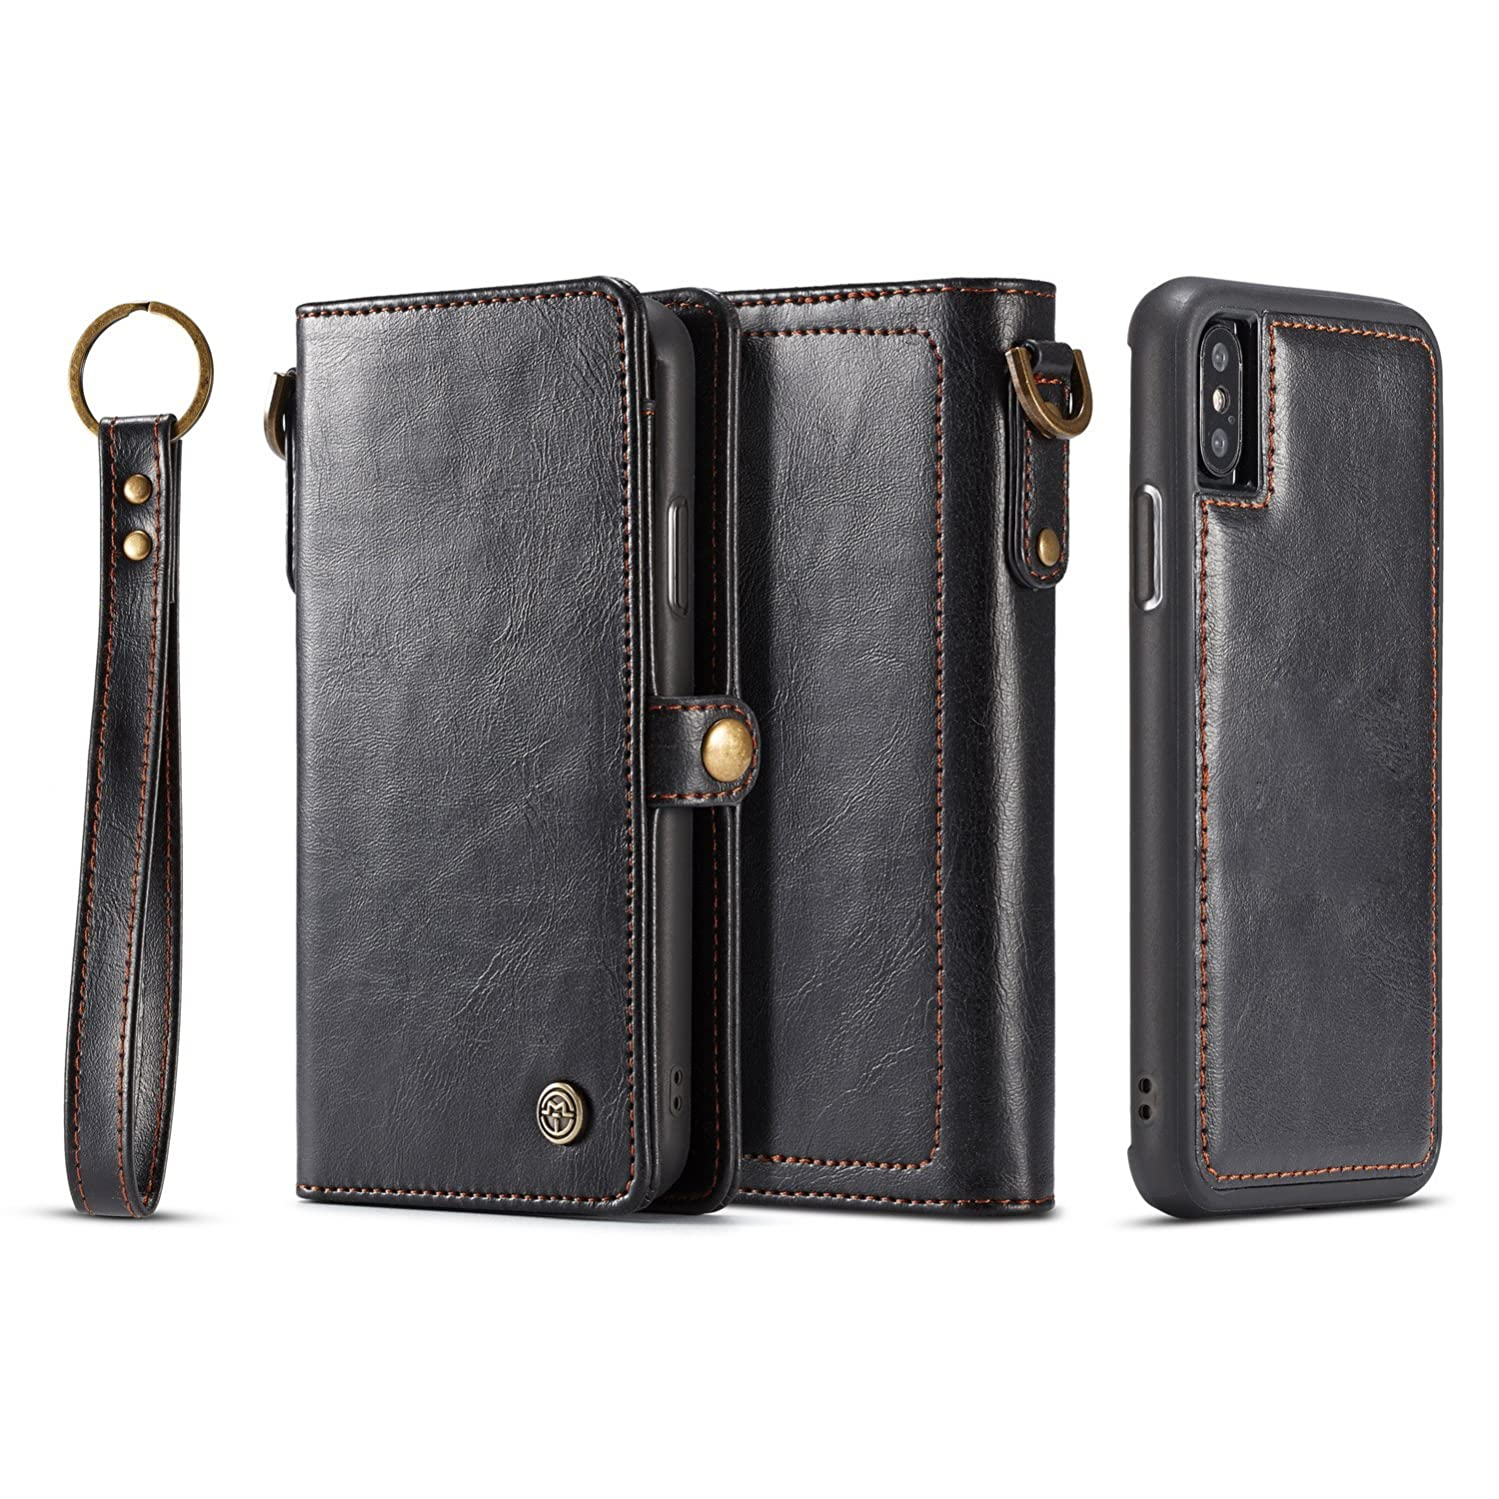 iPhone X/Xs Wallet Case,Premium PU Leather Multifunction Flip Folio Magnetic Card Slots with Detachable Fit Car Mount Case for iPhone X/Xs,5.8 inch (X-Black)